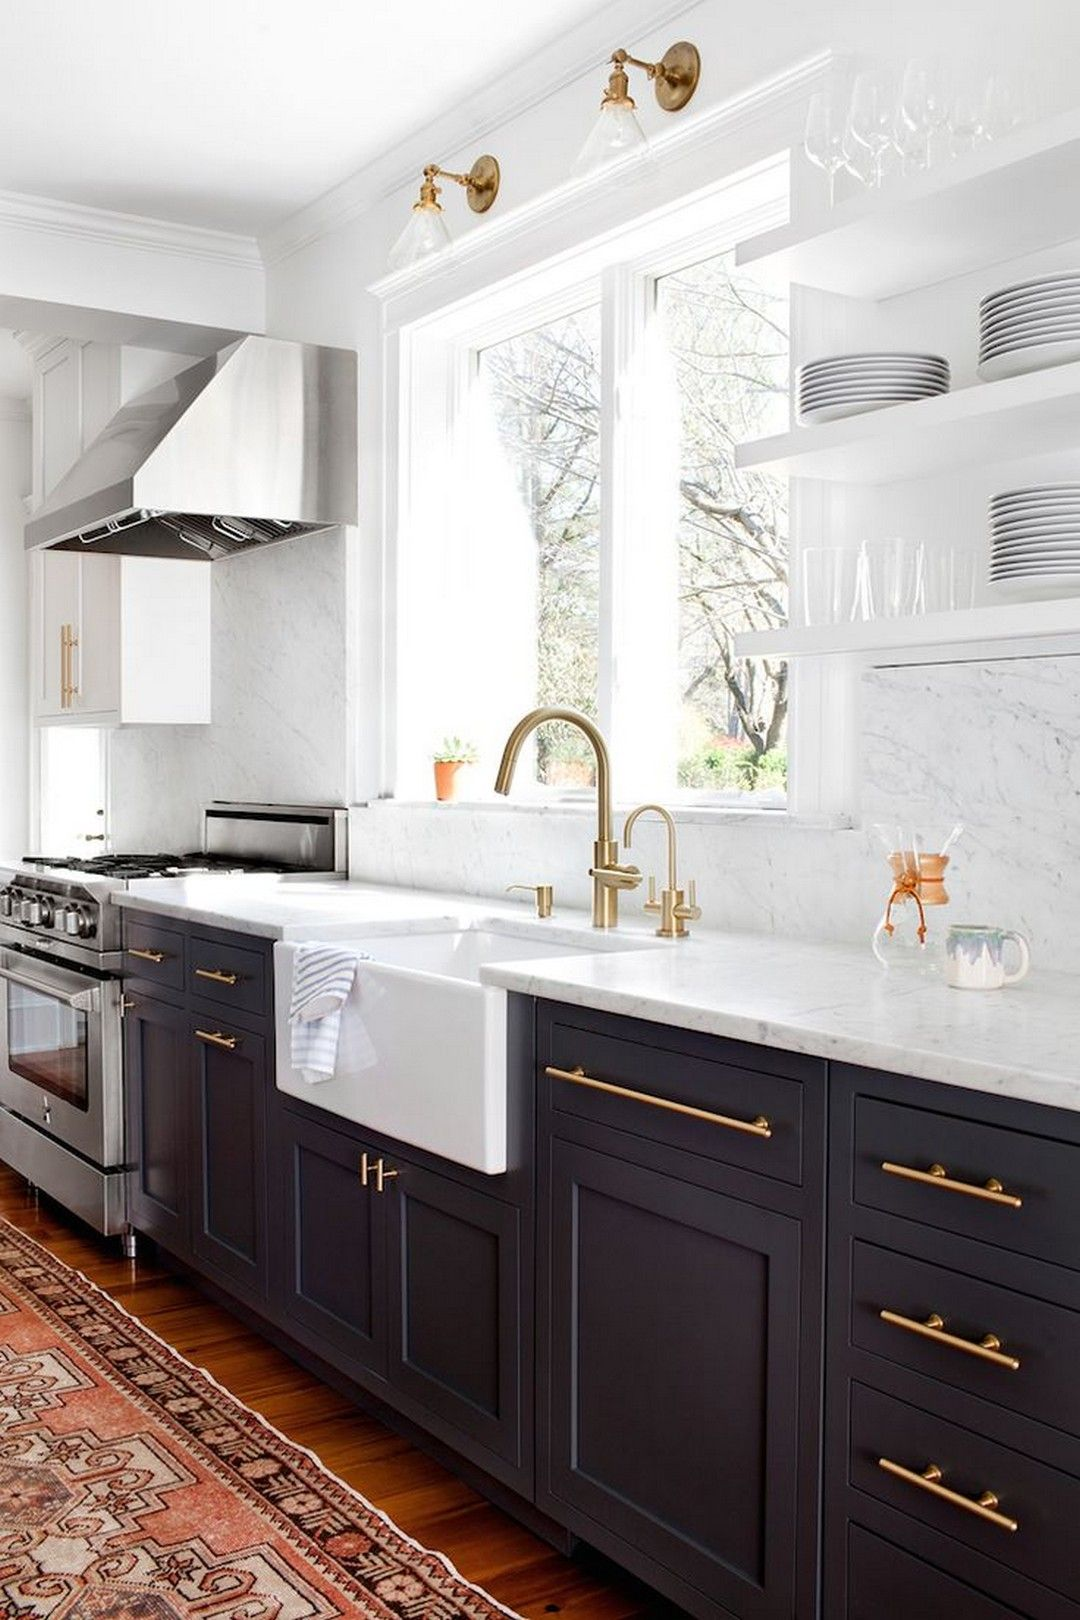 Top smart kitchen design and storage solutions you must try